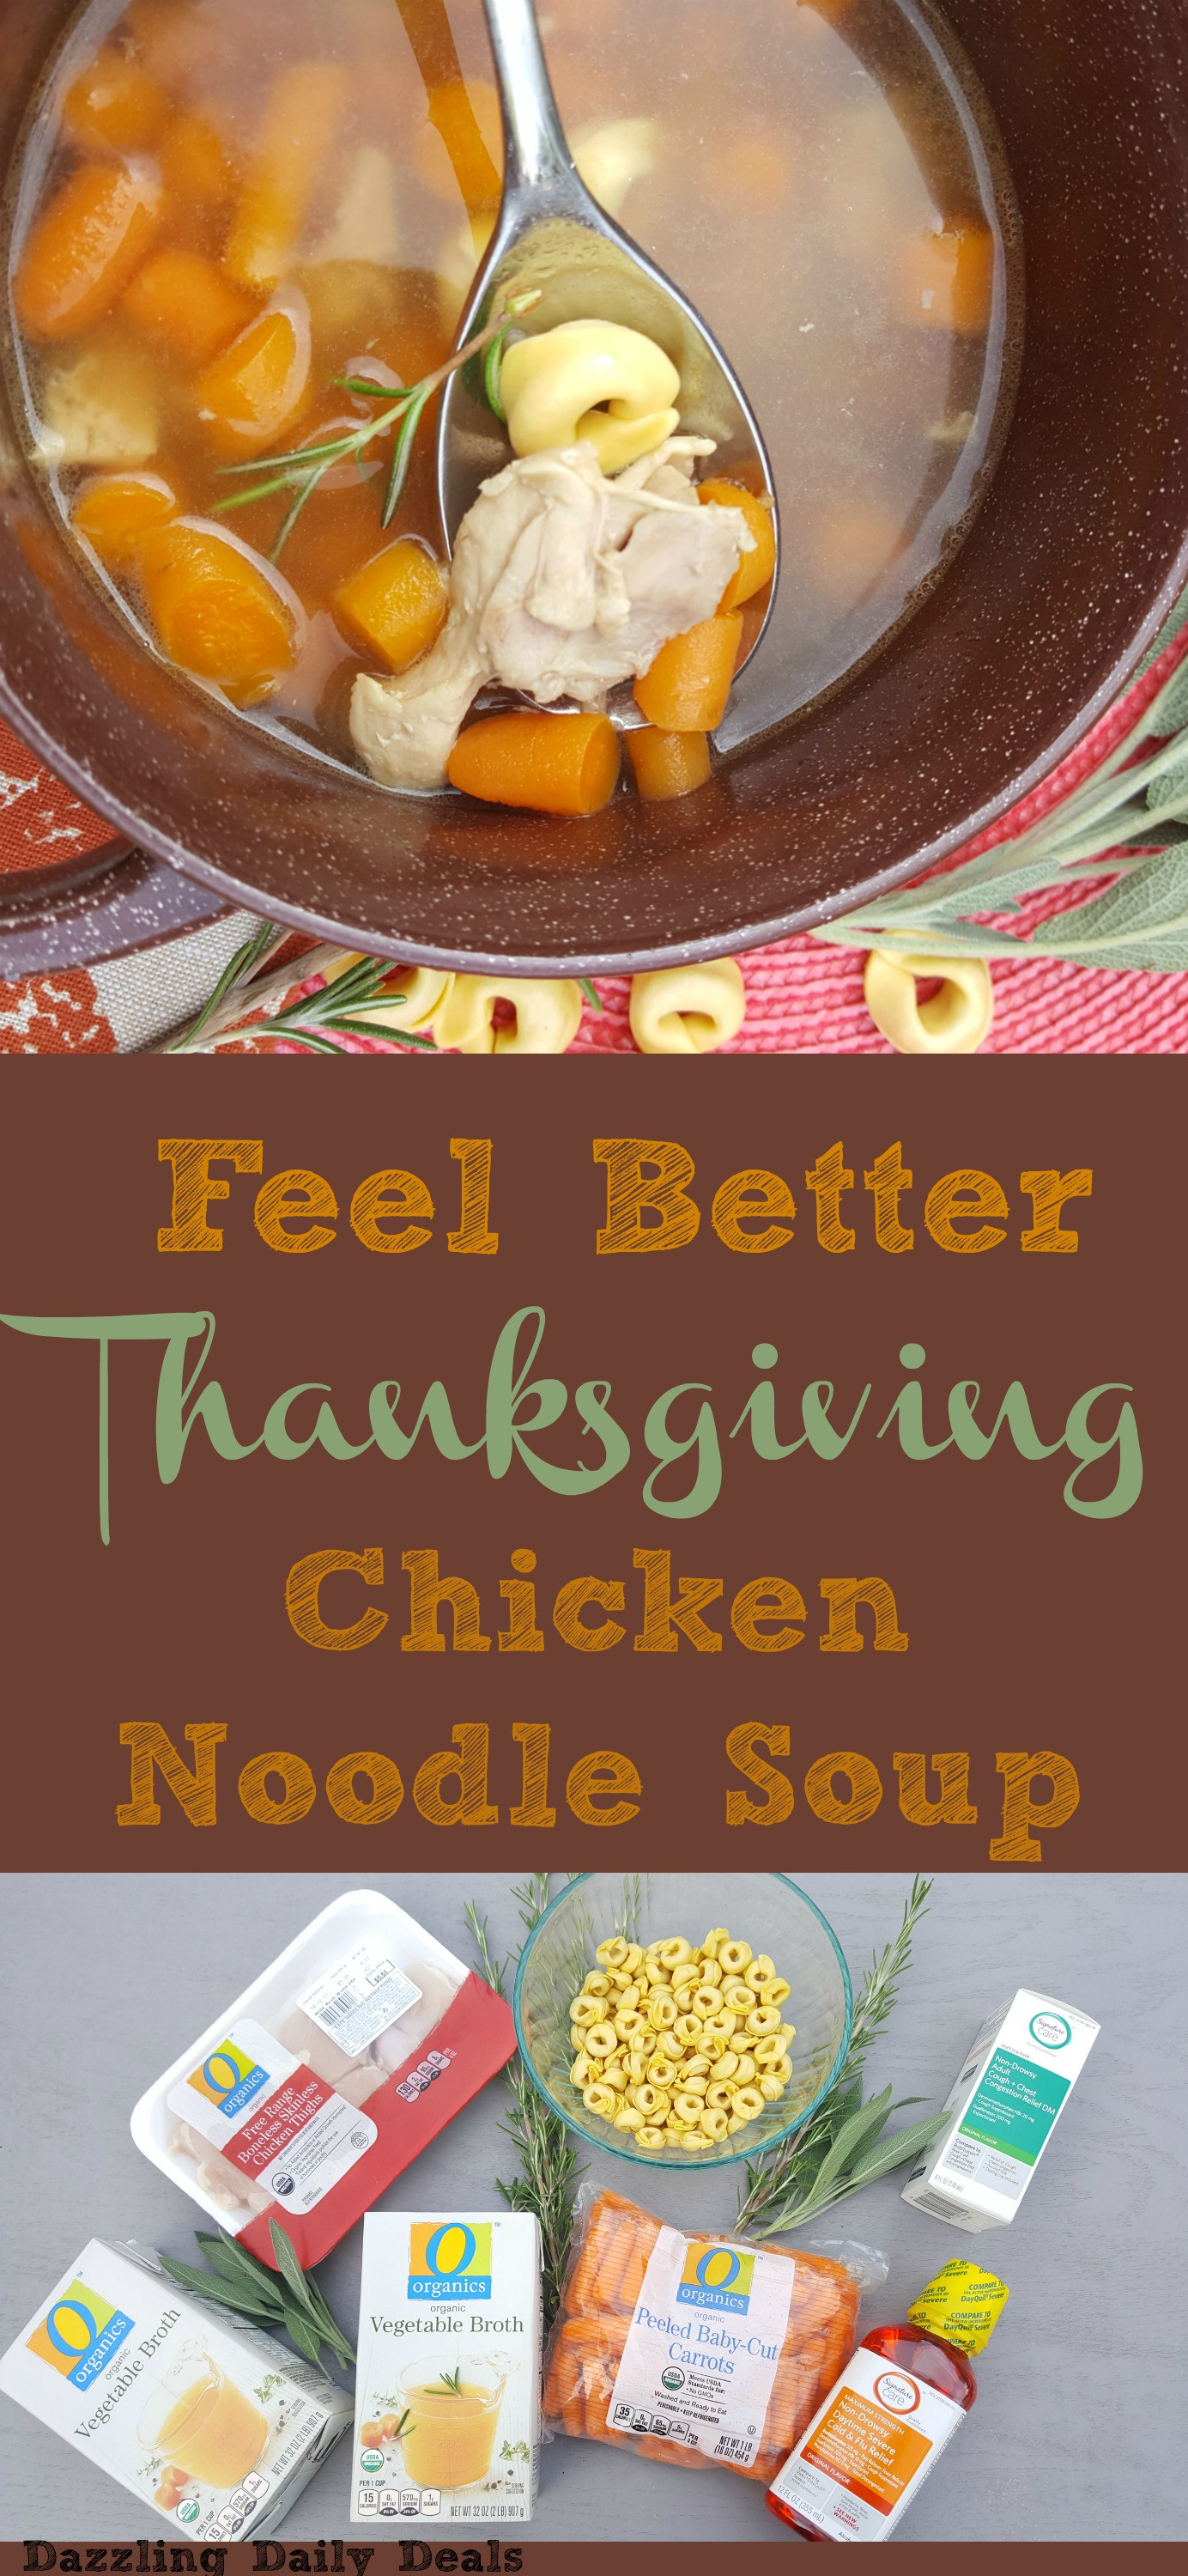 Albertsons Thanksgiving Dinners  Boost Your Immune System With Thanksgiving Chicken Noodle